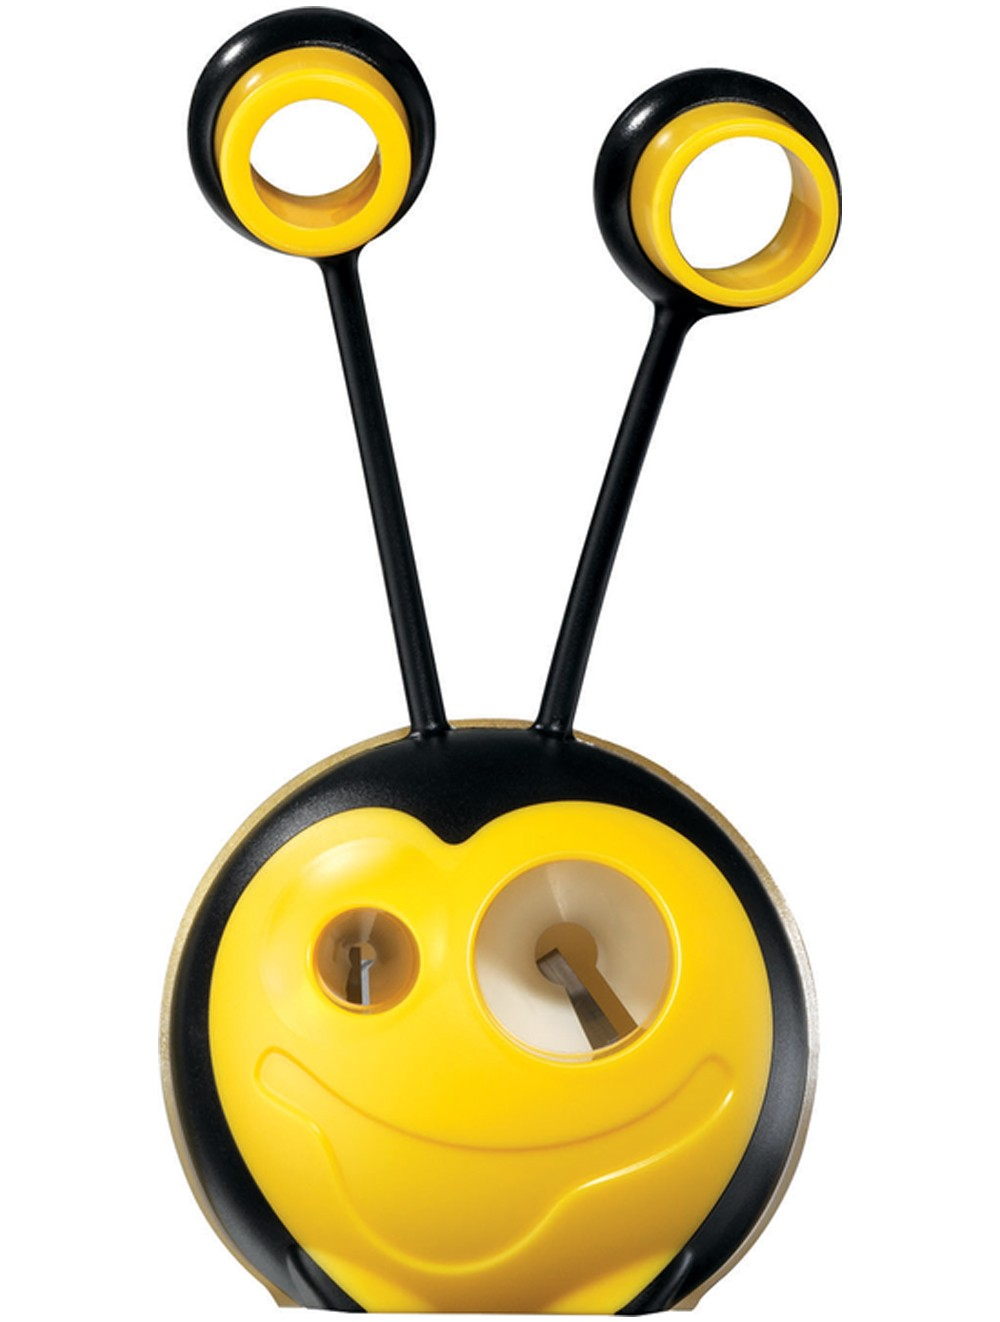 MAPED CROC CROC BEE SHARPENER